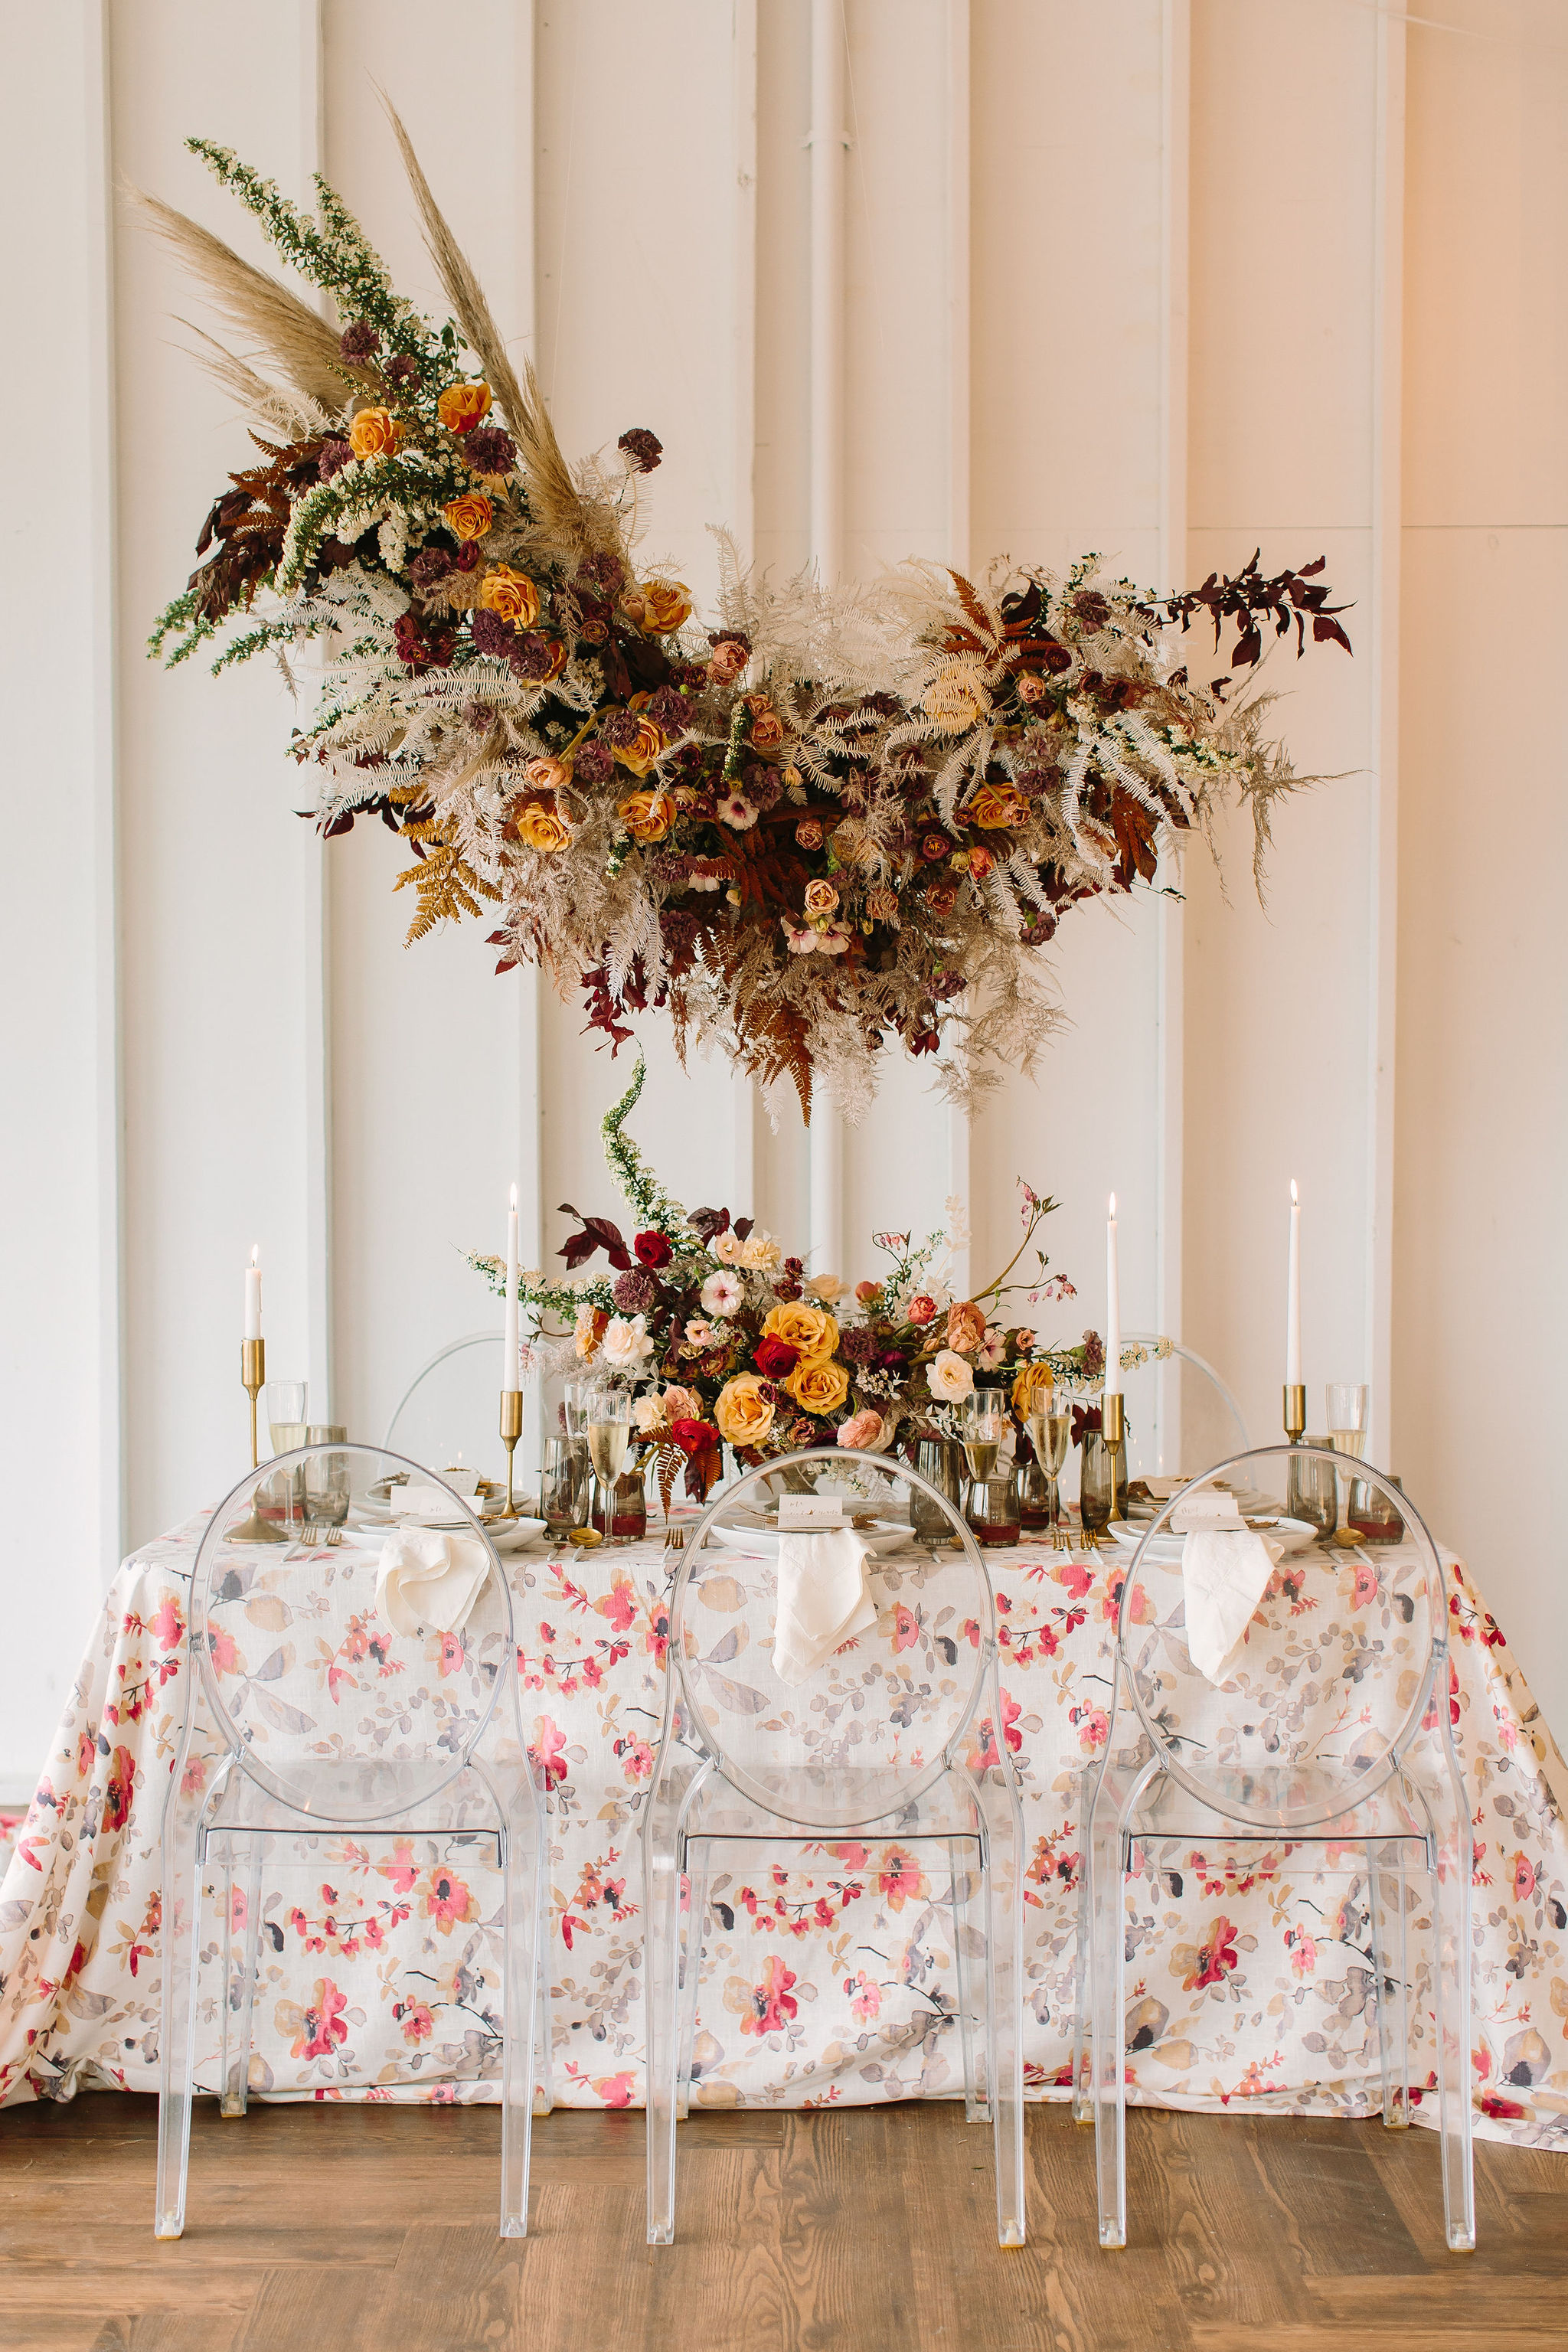 8 Favorite Tools for Floral Installations